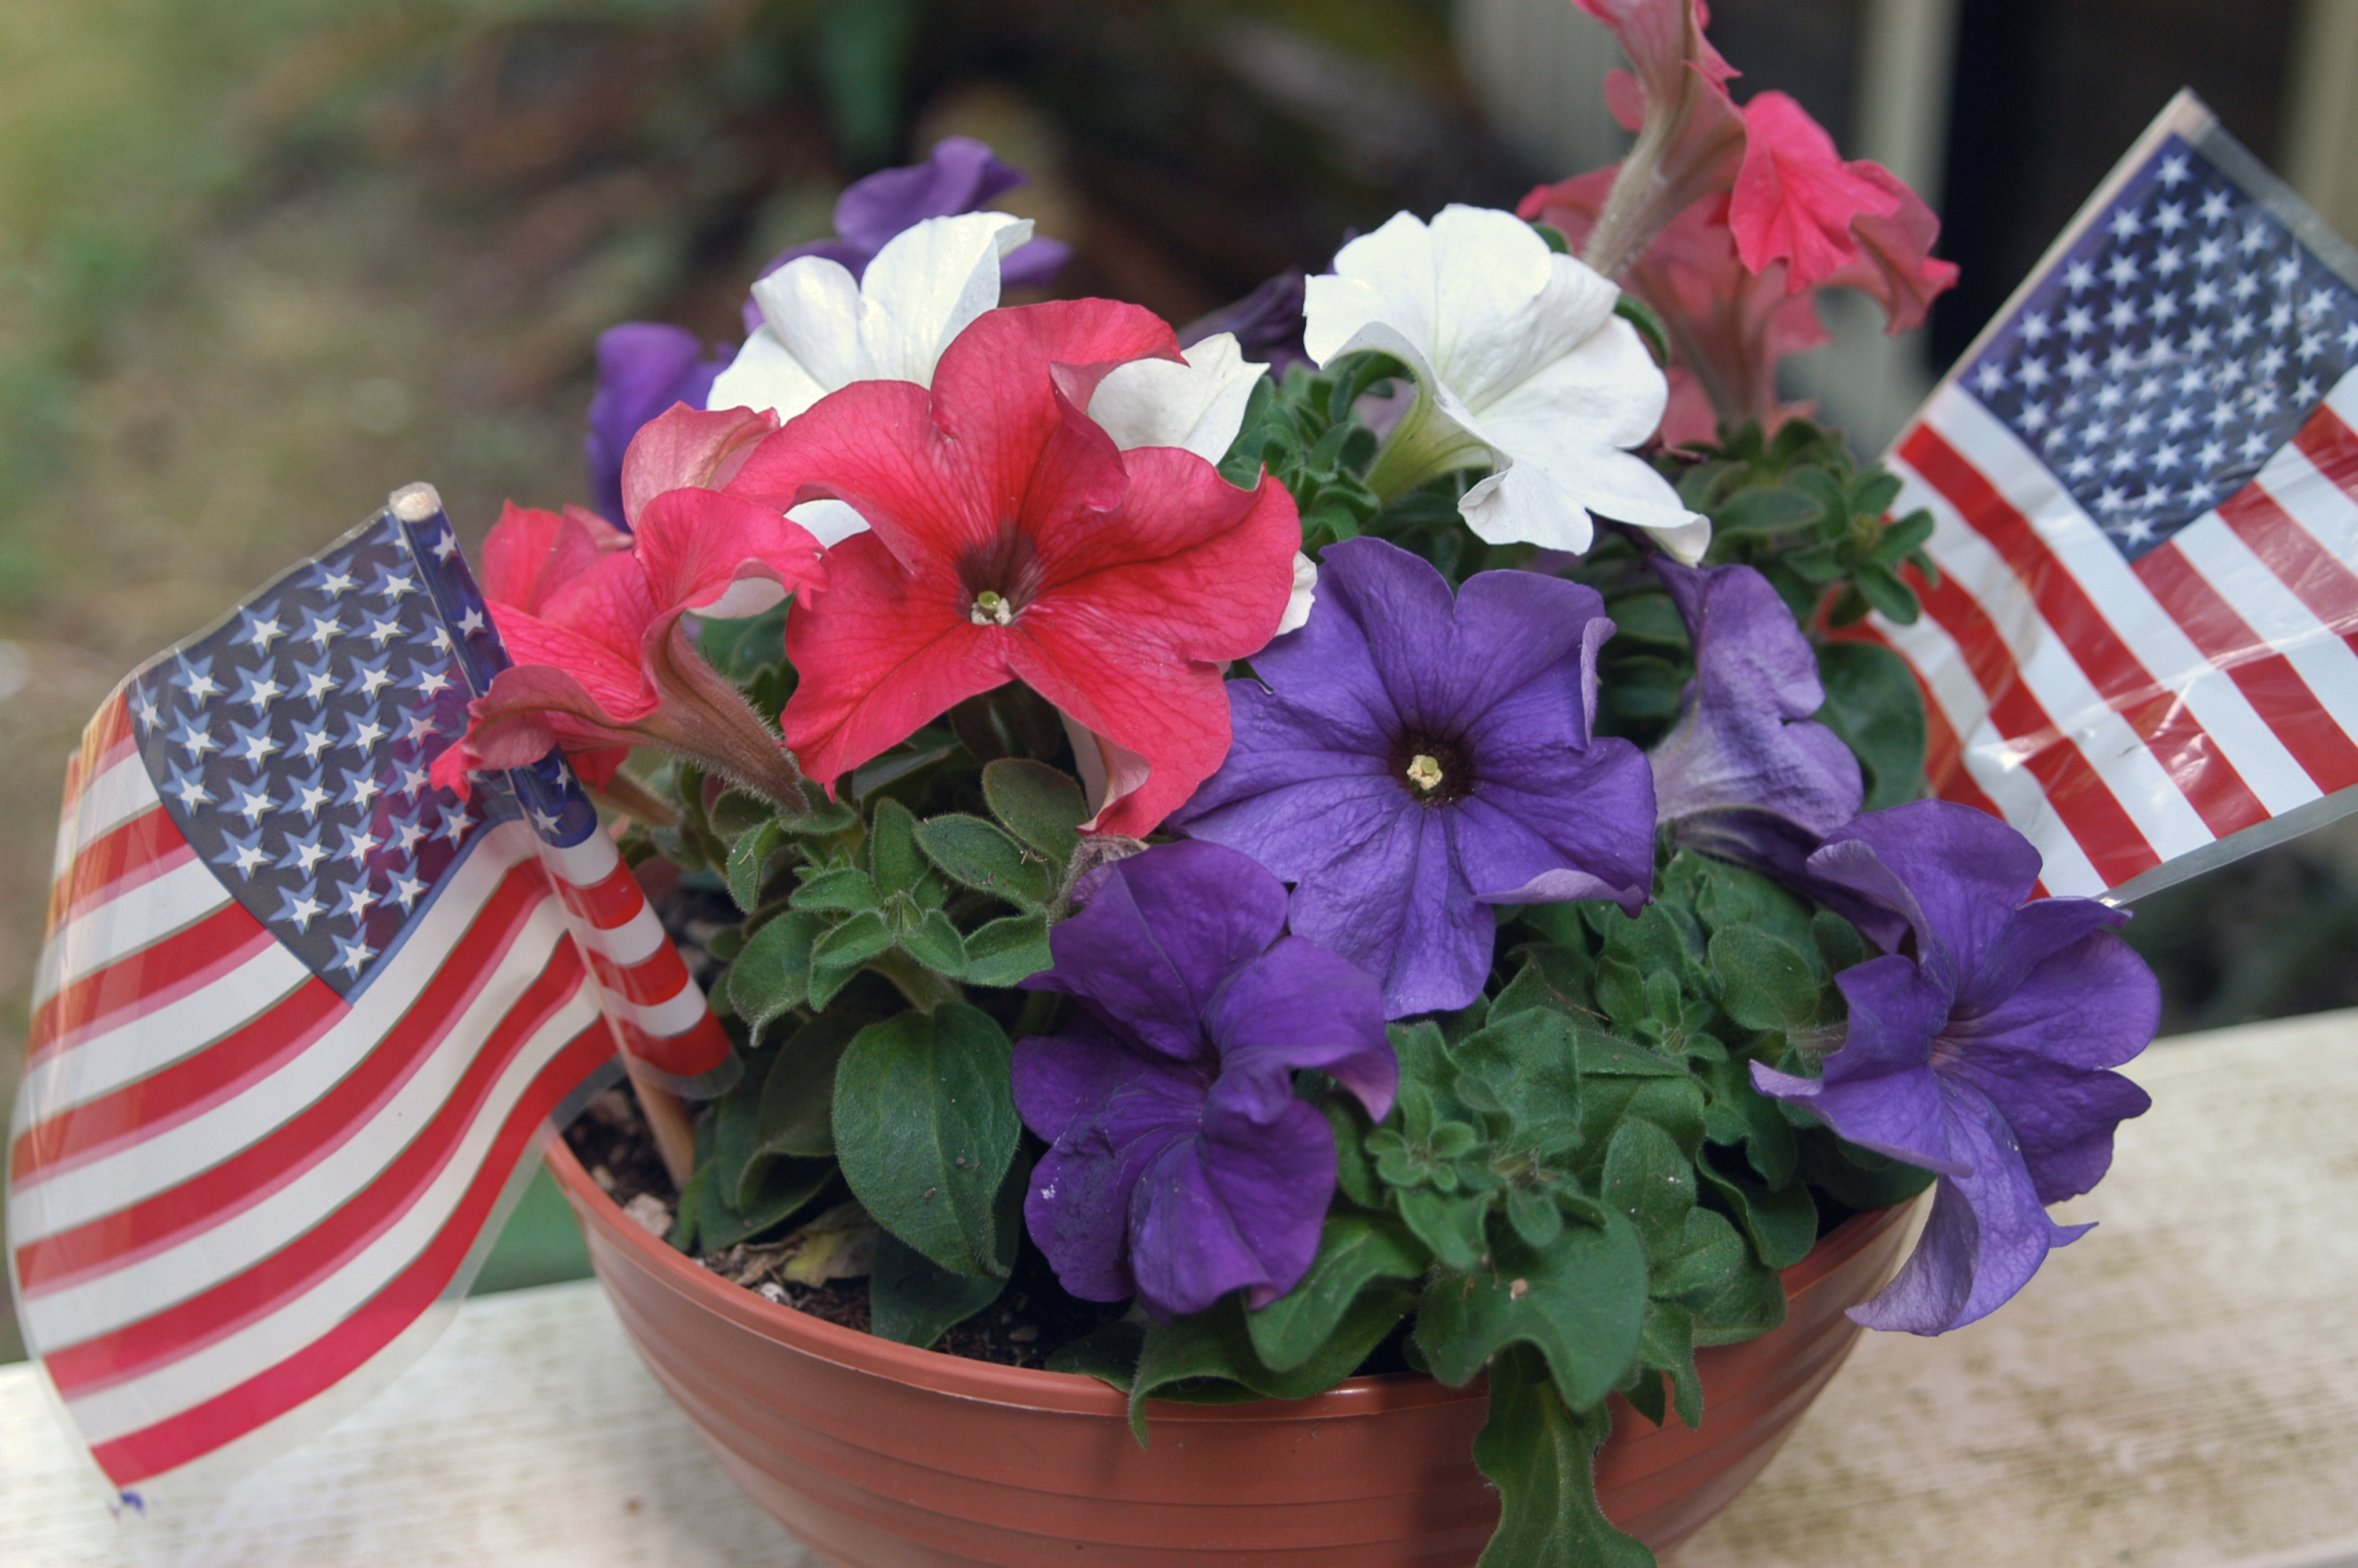 xxflowersjuly-4th-005.jpg